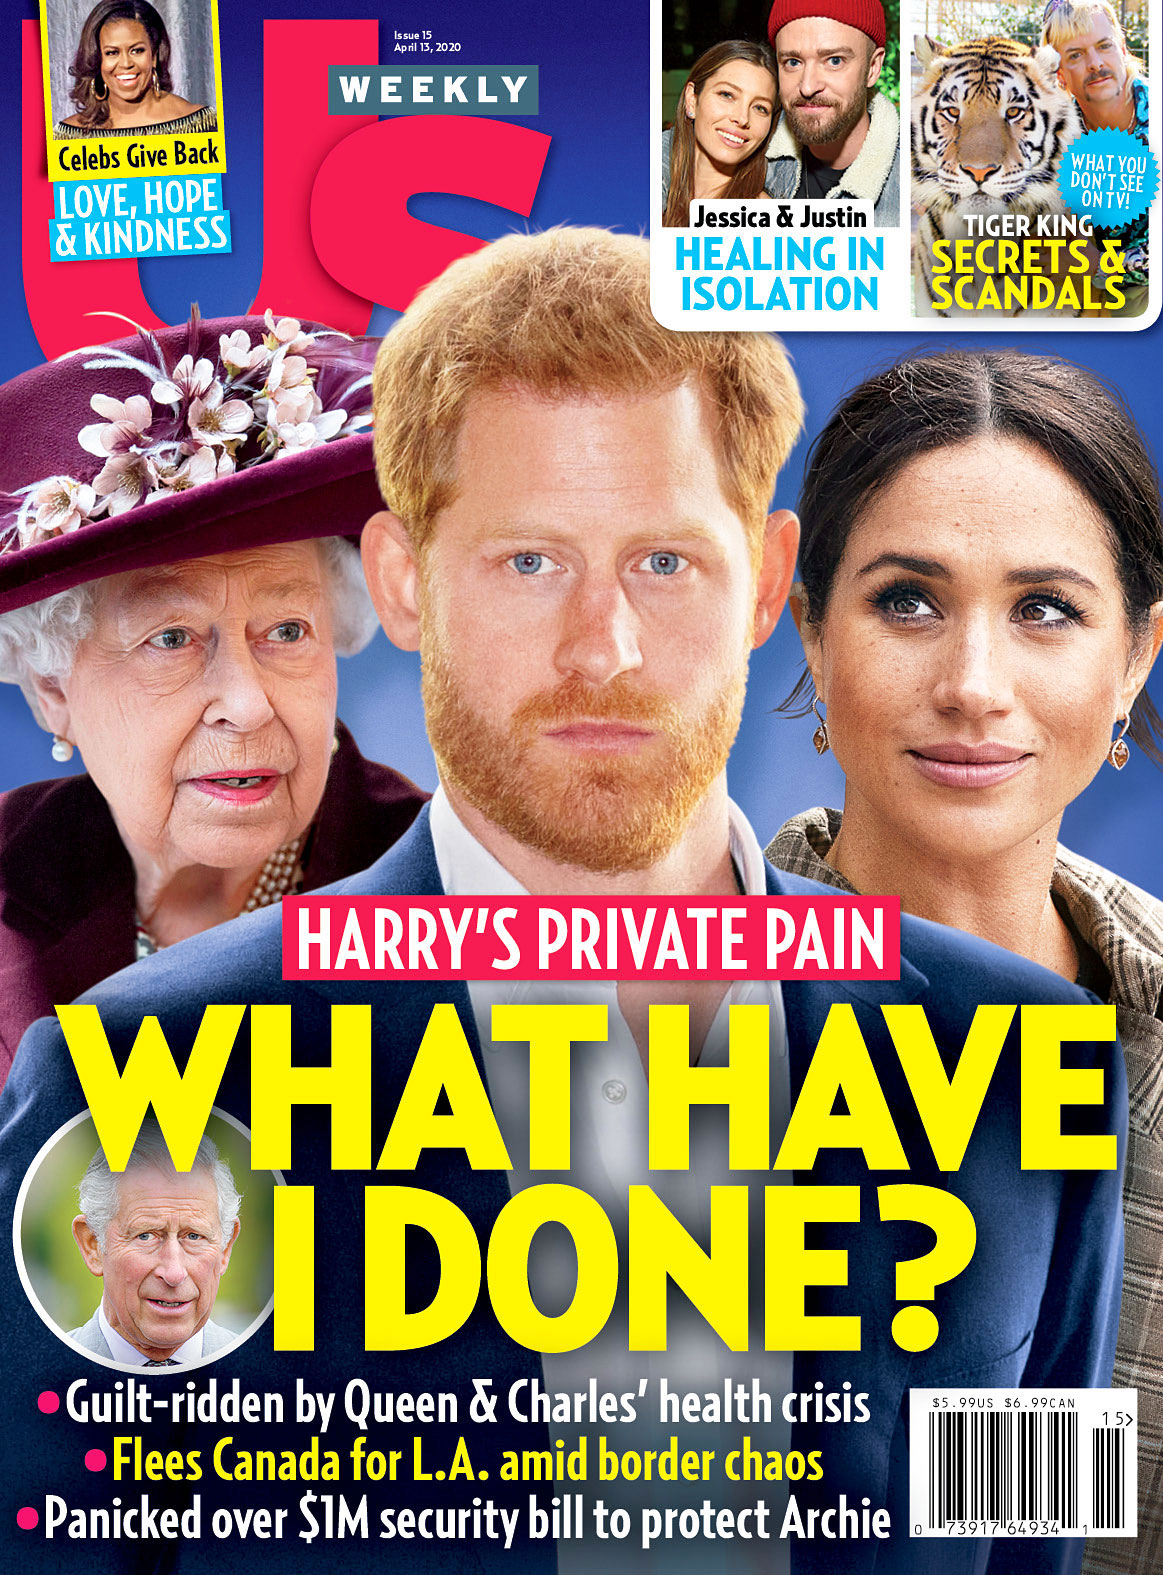 Us Weekly Cover Issue 1520 Prince Harry Meghan Markle Queen Elizabeth Ben Affleck Would Love to Have a Baby With His Girlfriend Ana De Armas